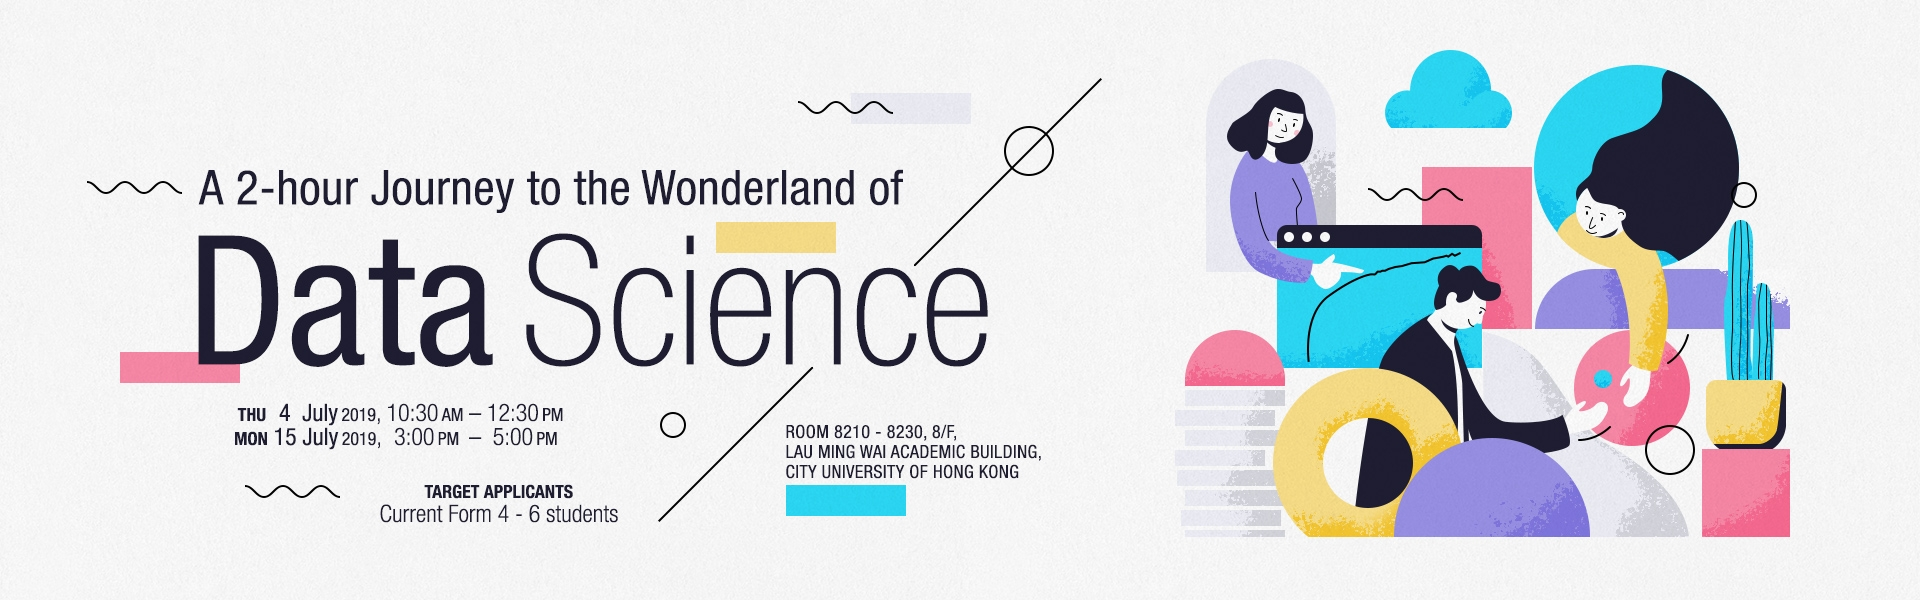 A Journey to the Wonderland of Data Science